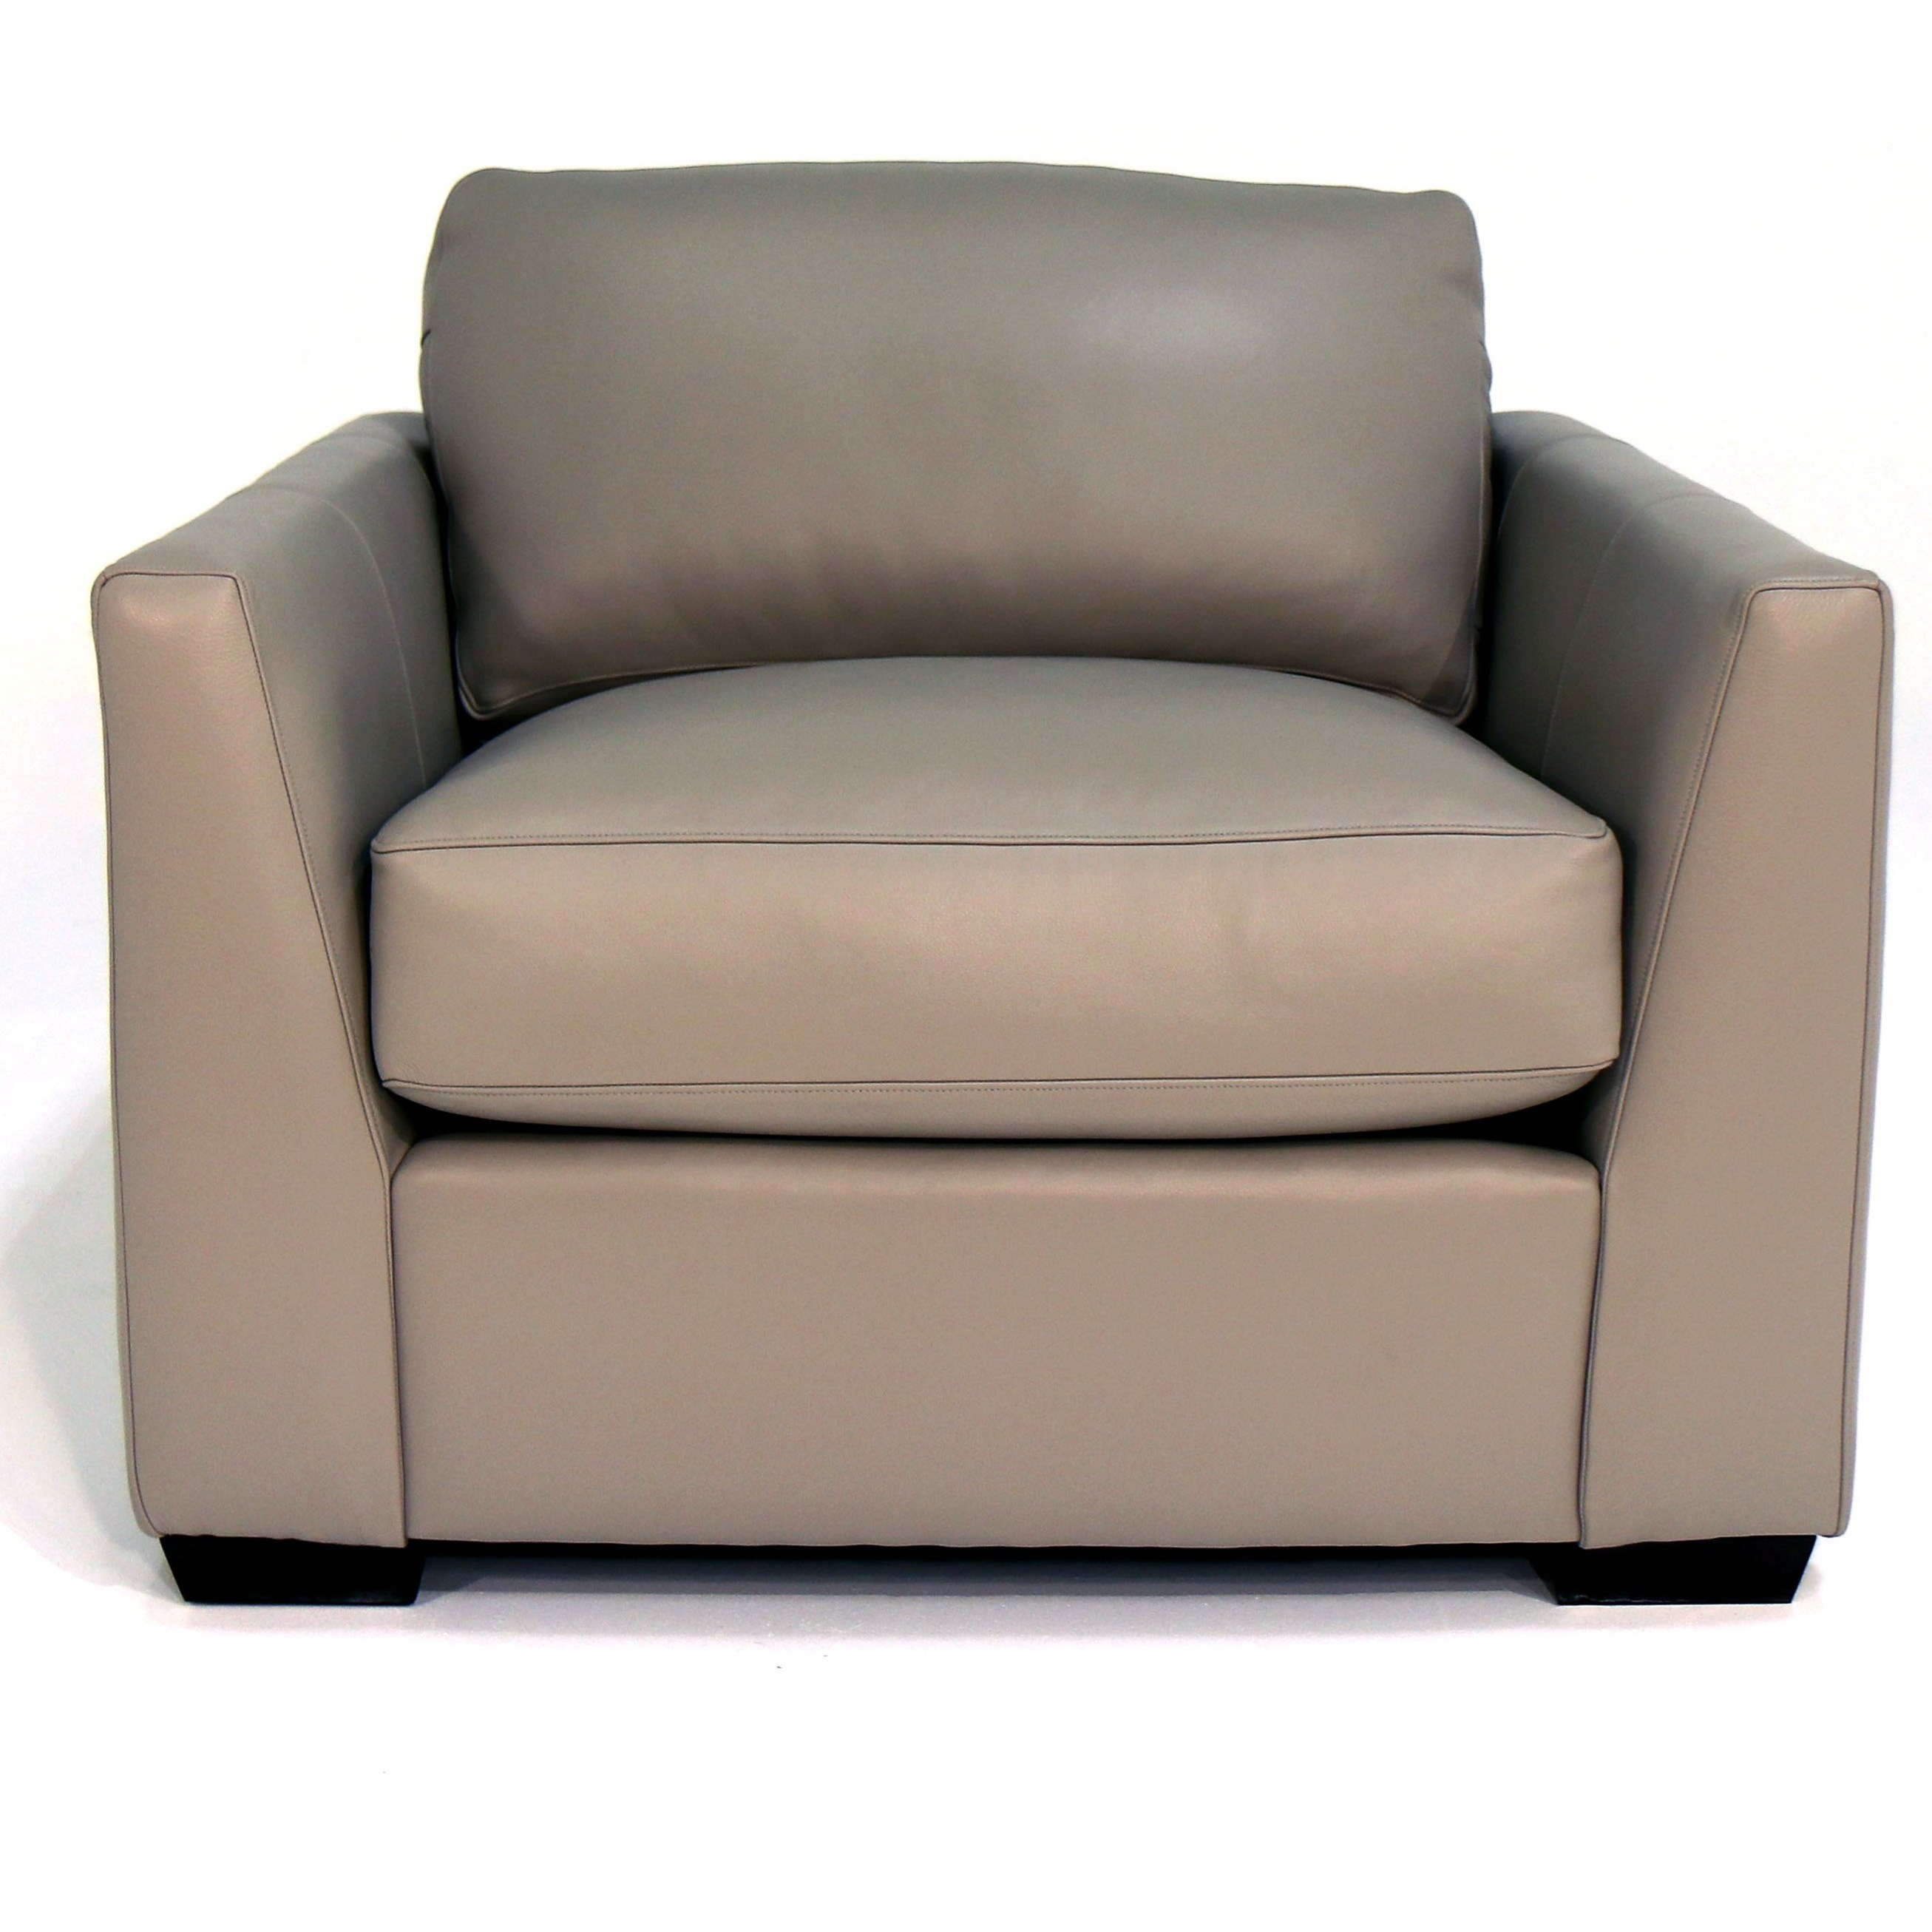 L783950 Chair and 1/2 by Craftmaster at Baer's Furniture